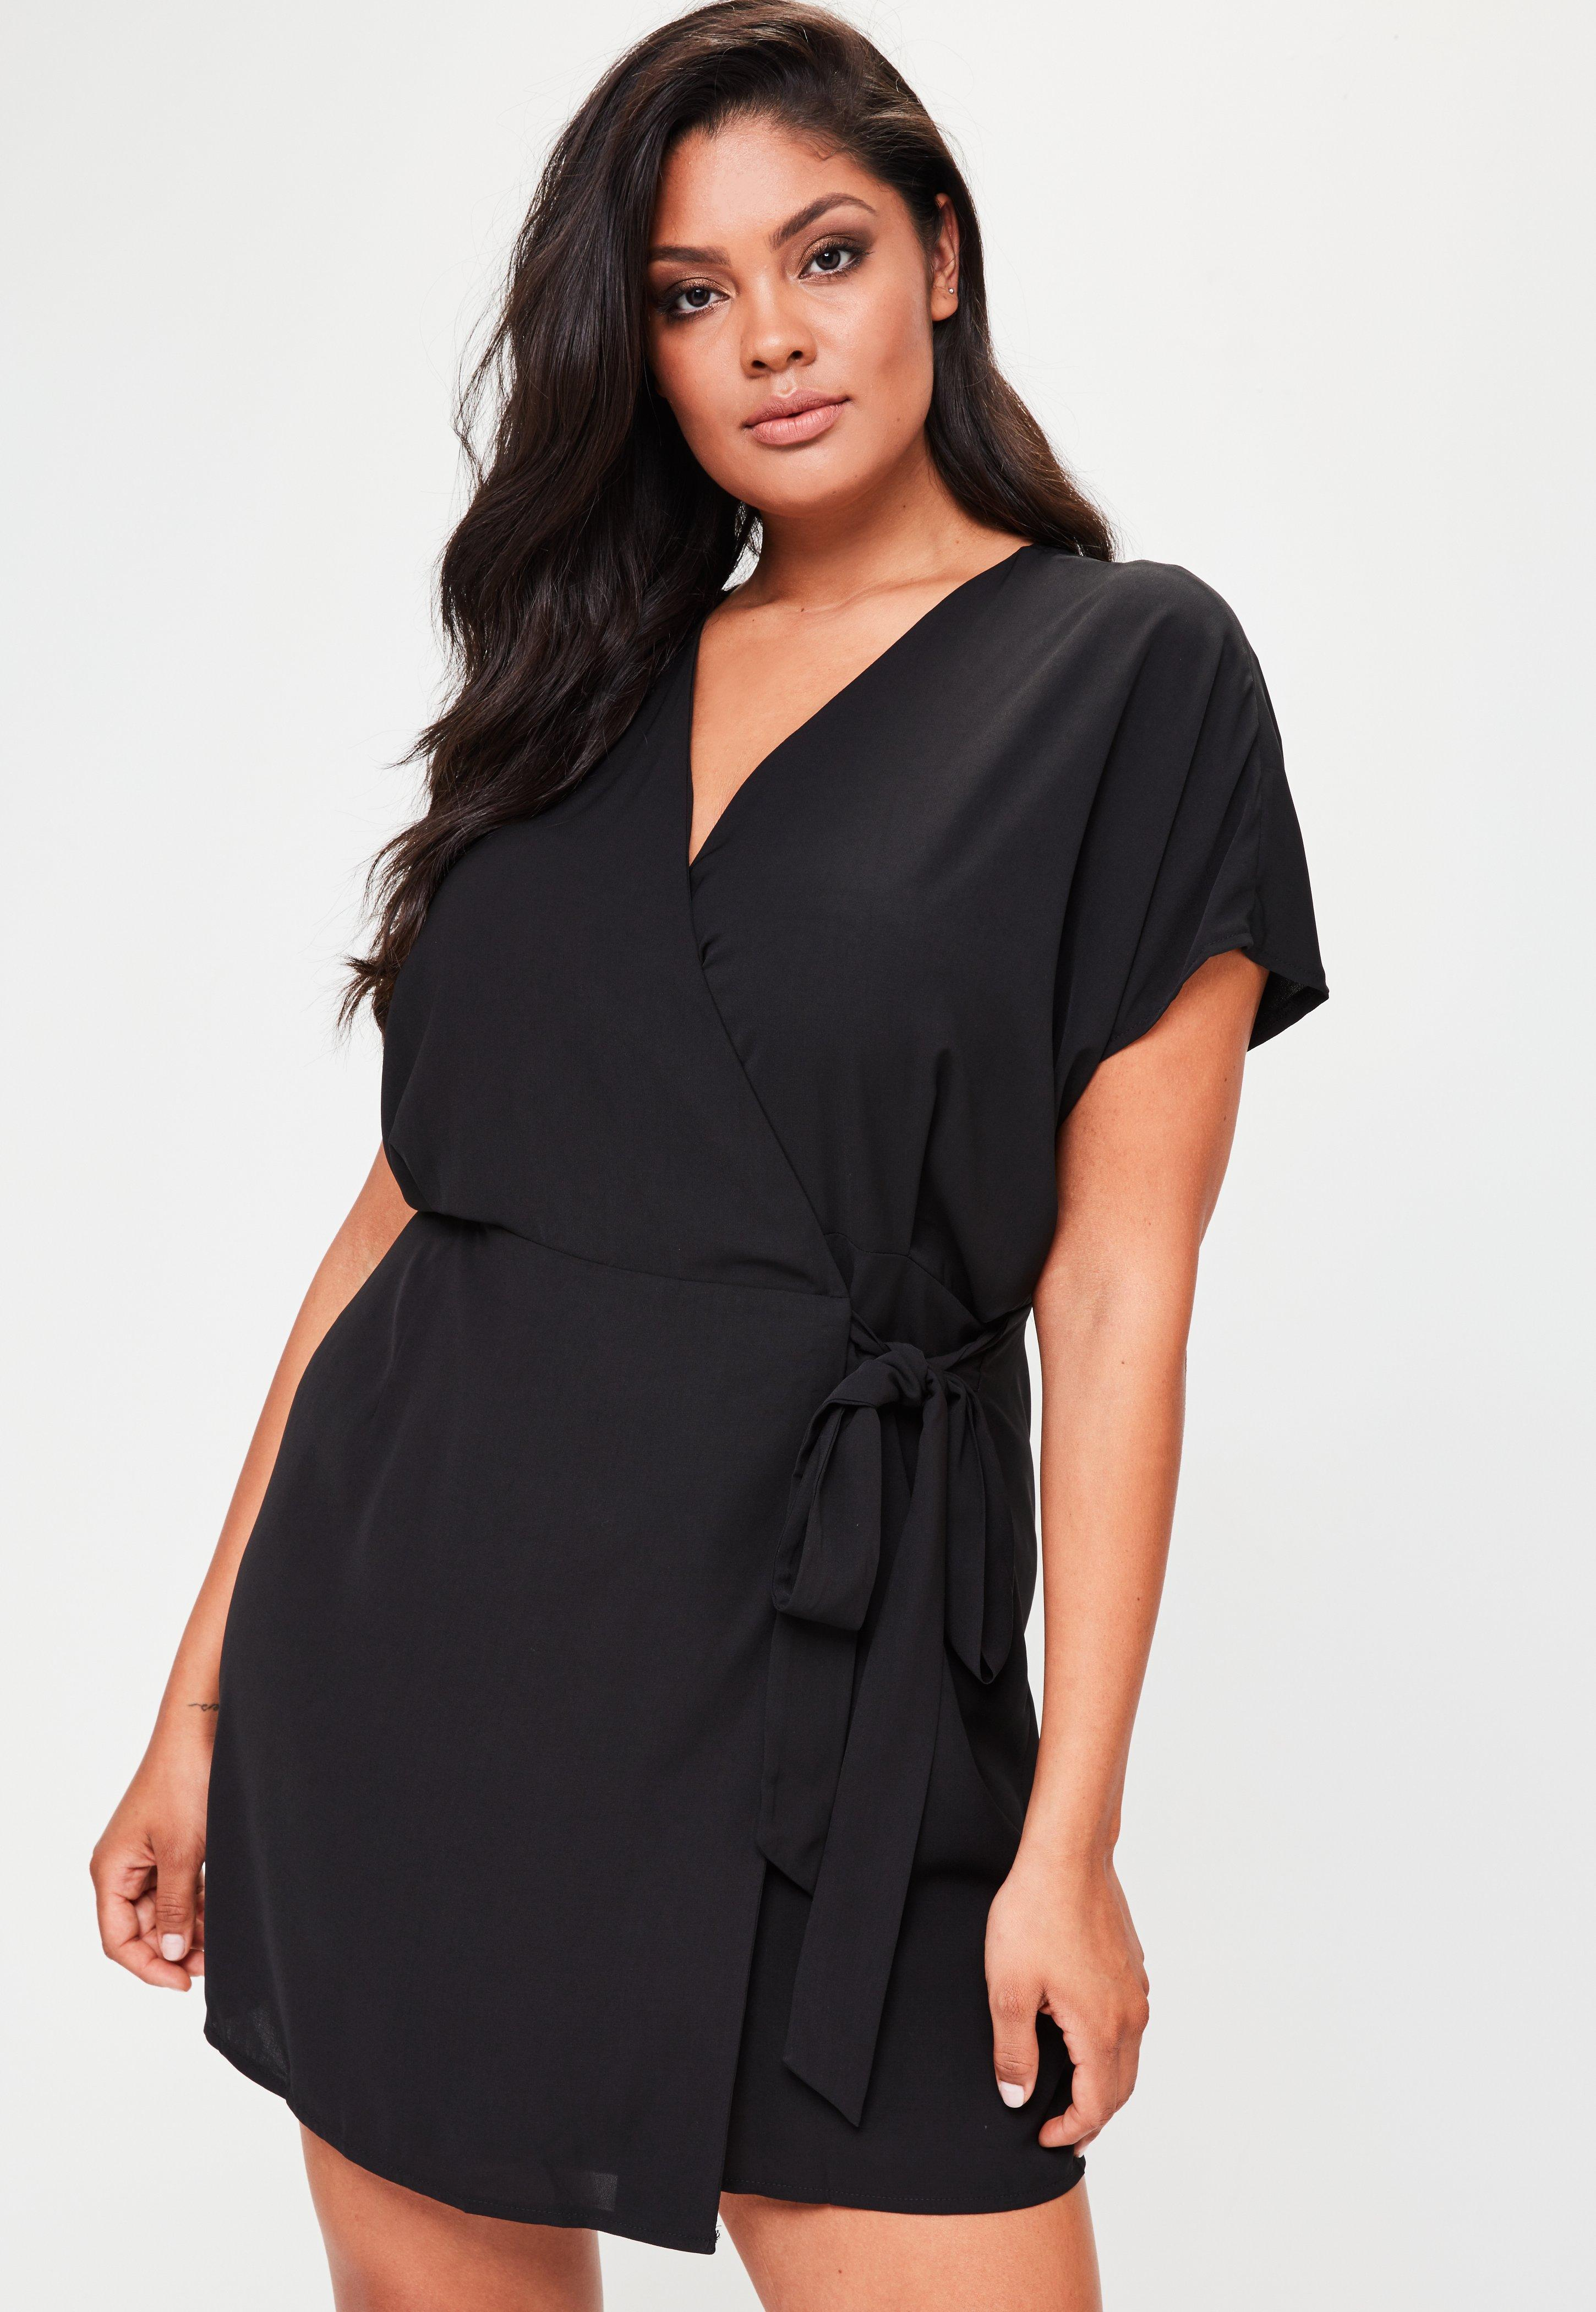 17ffc14810e3 Mode grande taille   Vêtement femme grande taille - Missguided